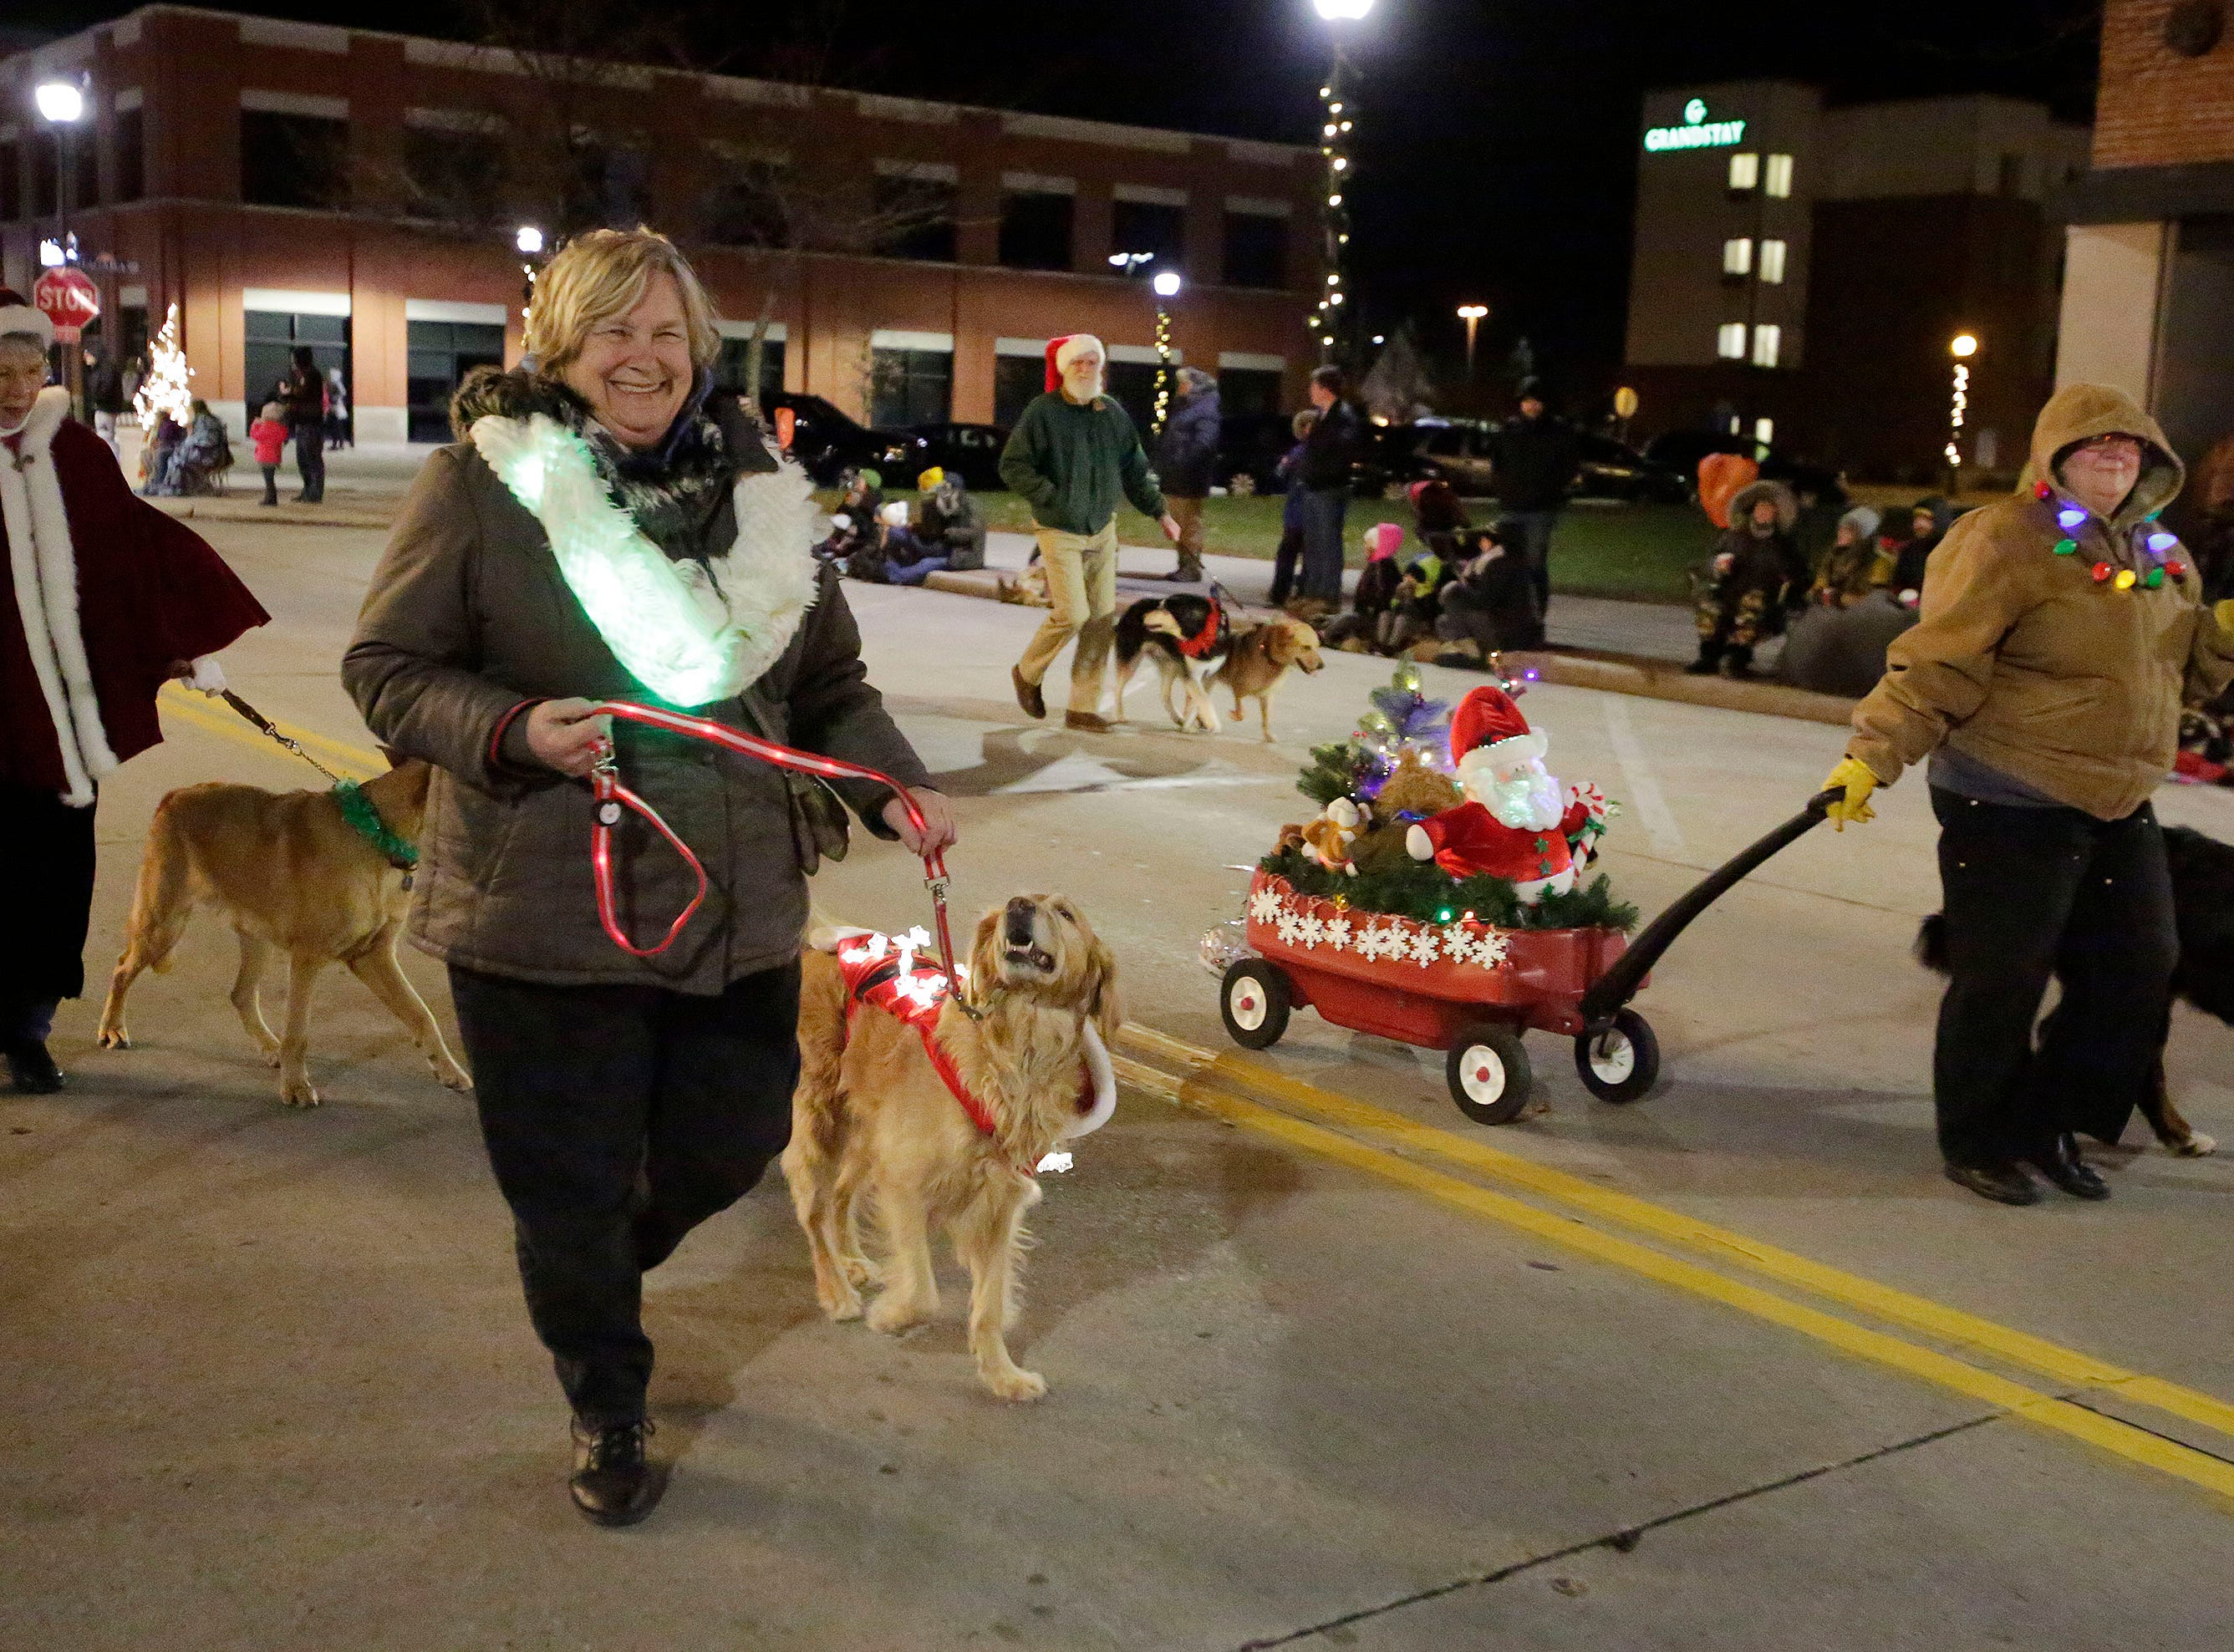 A scene from the 26th Annual Jaycees Holiday Parade, Sunday, November 25, 2018 in Sheboygan, Wis.